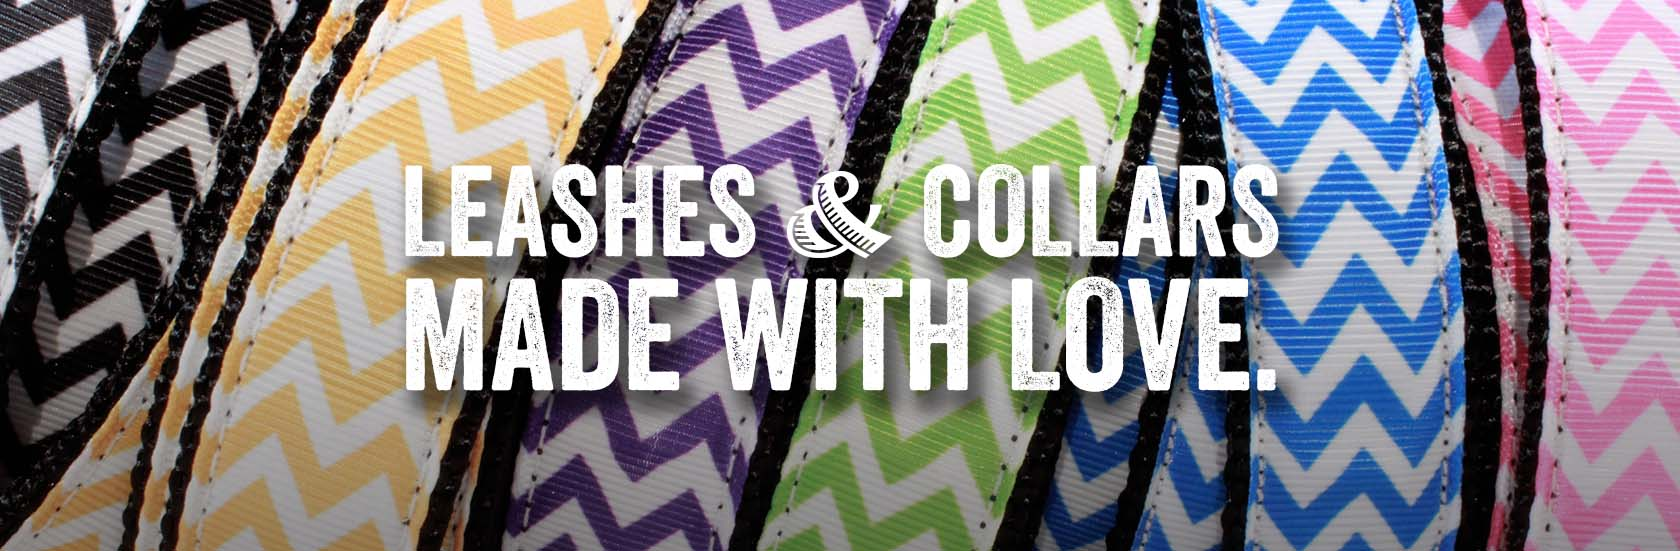 Leashes-Collars-by-ZigZag-Wags